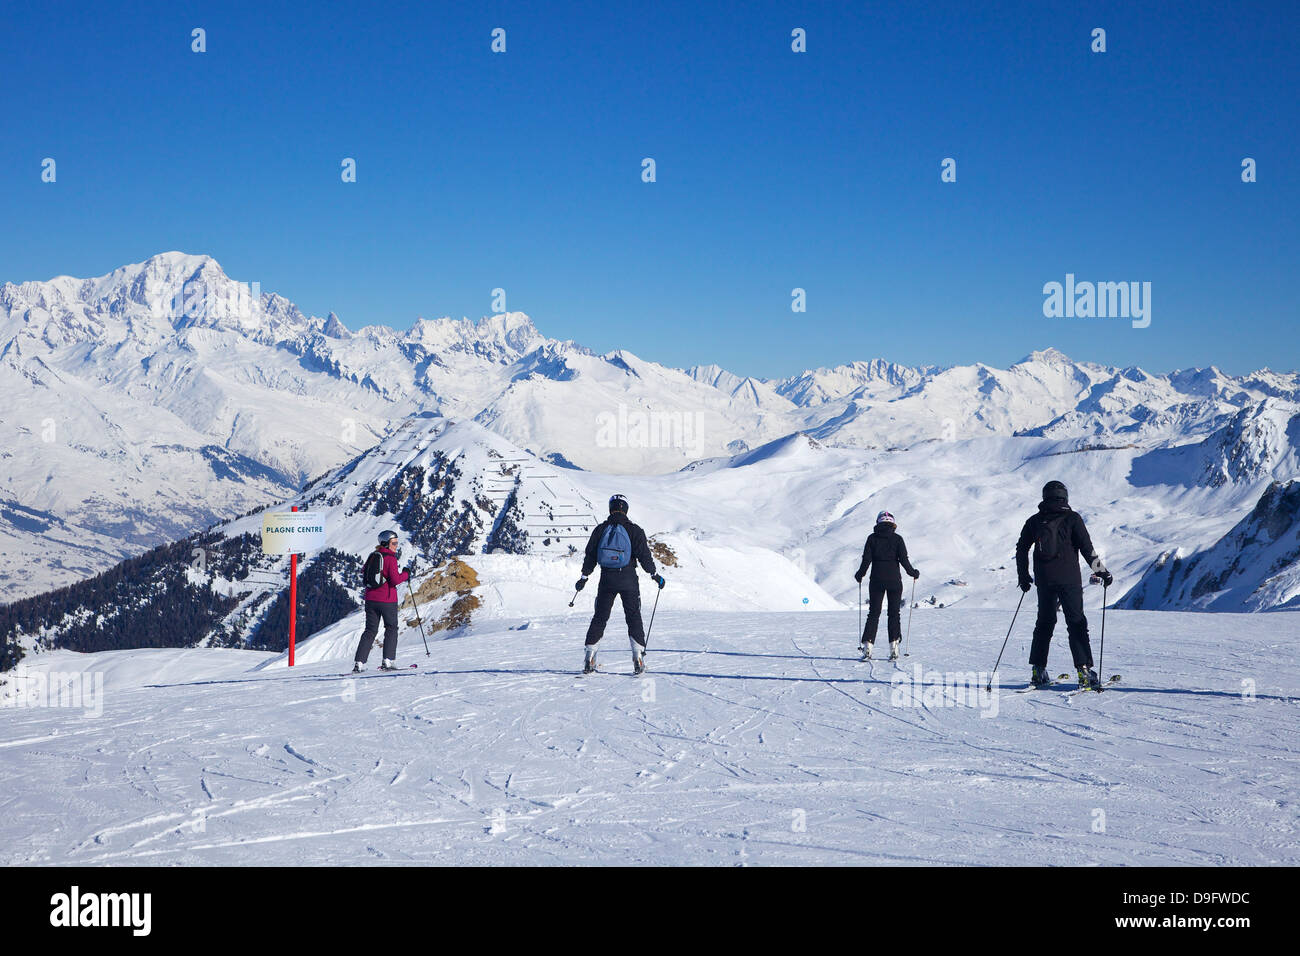 Skiers on the piste to Plagne Centre, La Plagne, French Alps, France - Stock Image